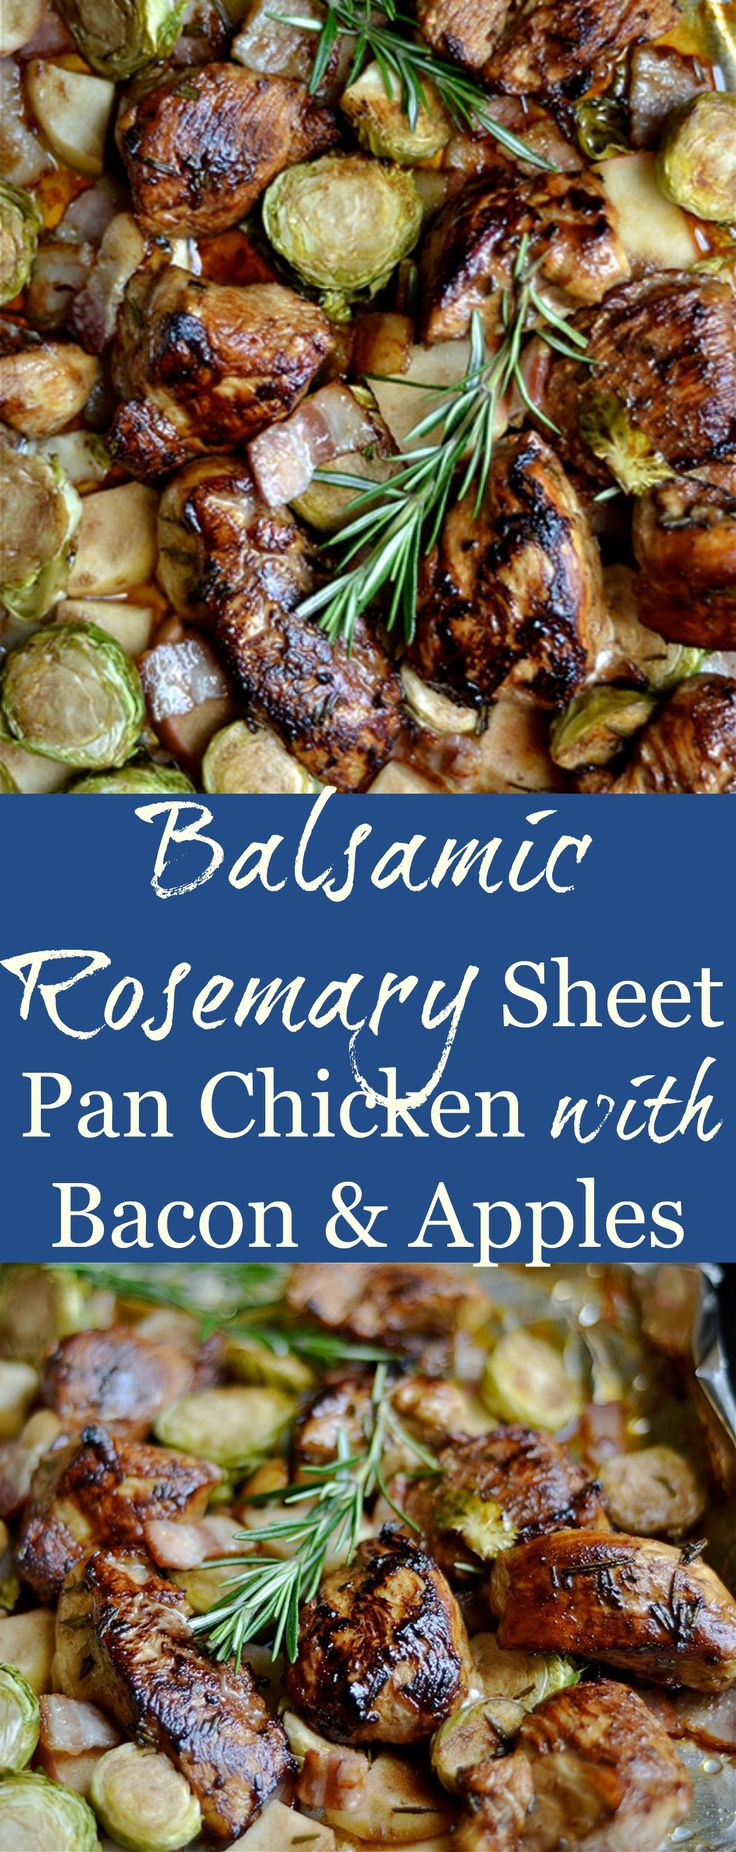 This super easy 1 pan dish is sooooo delicious!!! Paleo, and Whole30 approved!